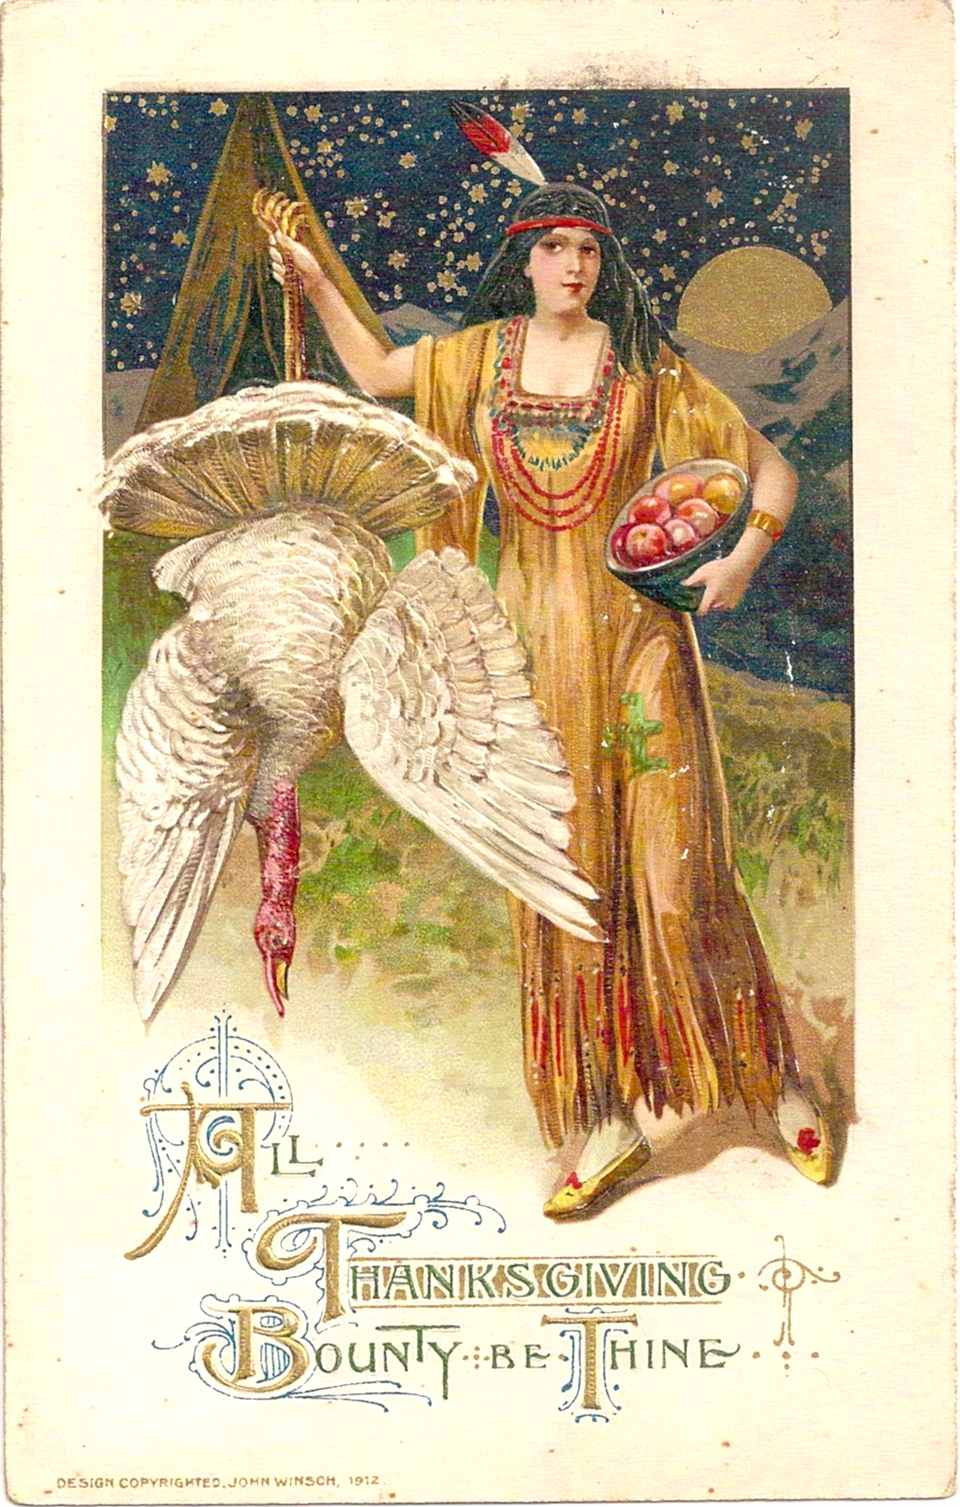 Thanksgiving Postcard Illustrated by Samuel L. Schmucker and Published by John Winsch in 1912